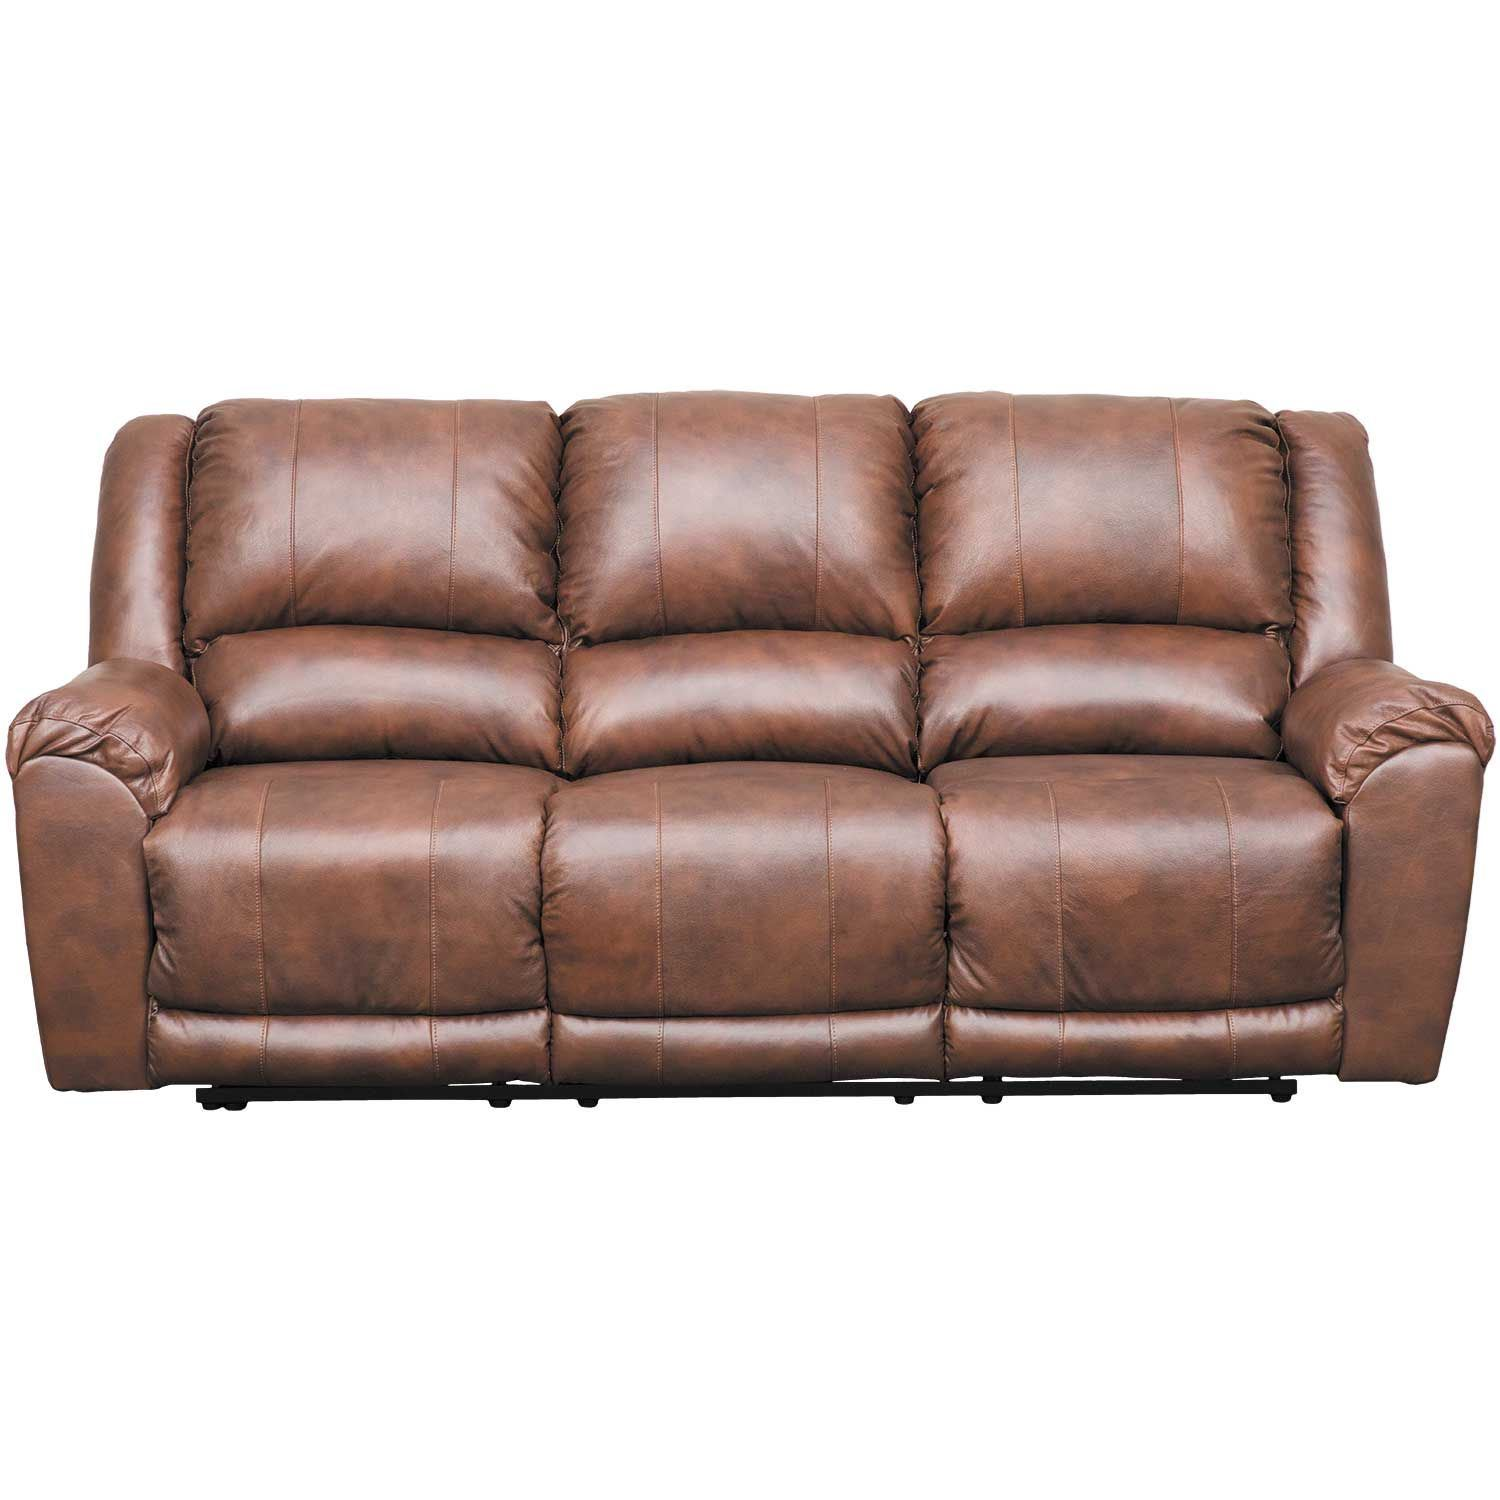 Persiphone Brown Leather Reclining Sofa 6070288 Ashley